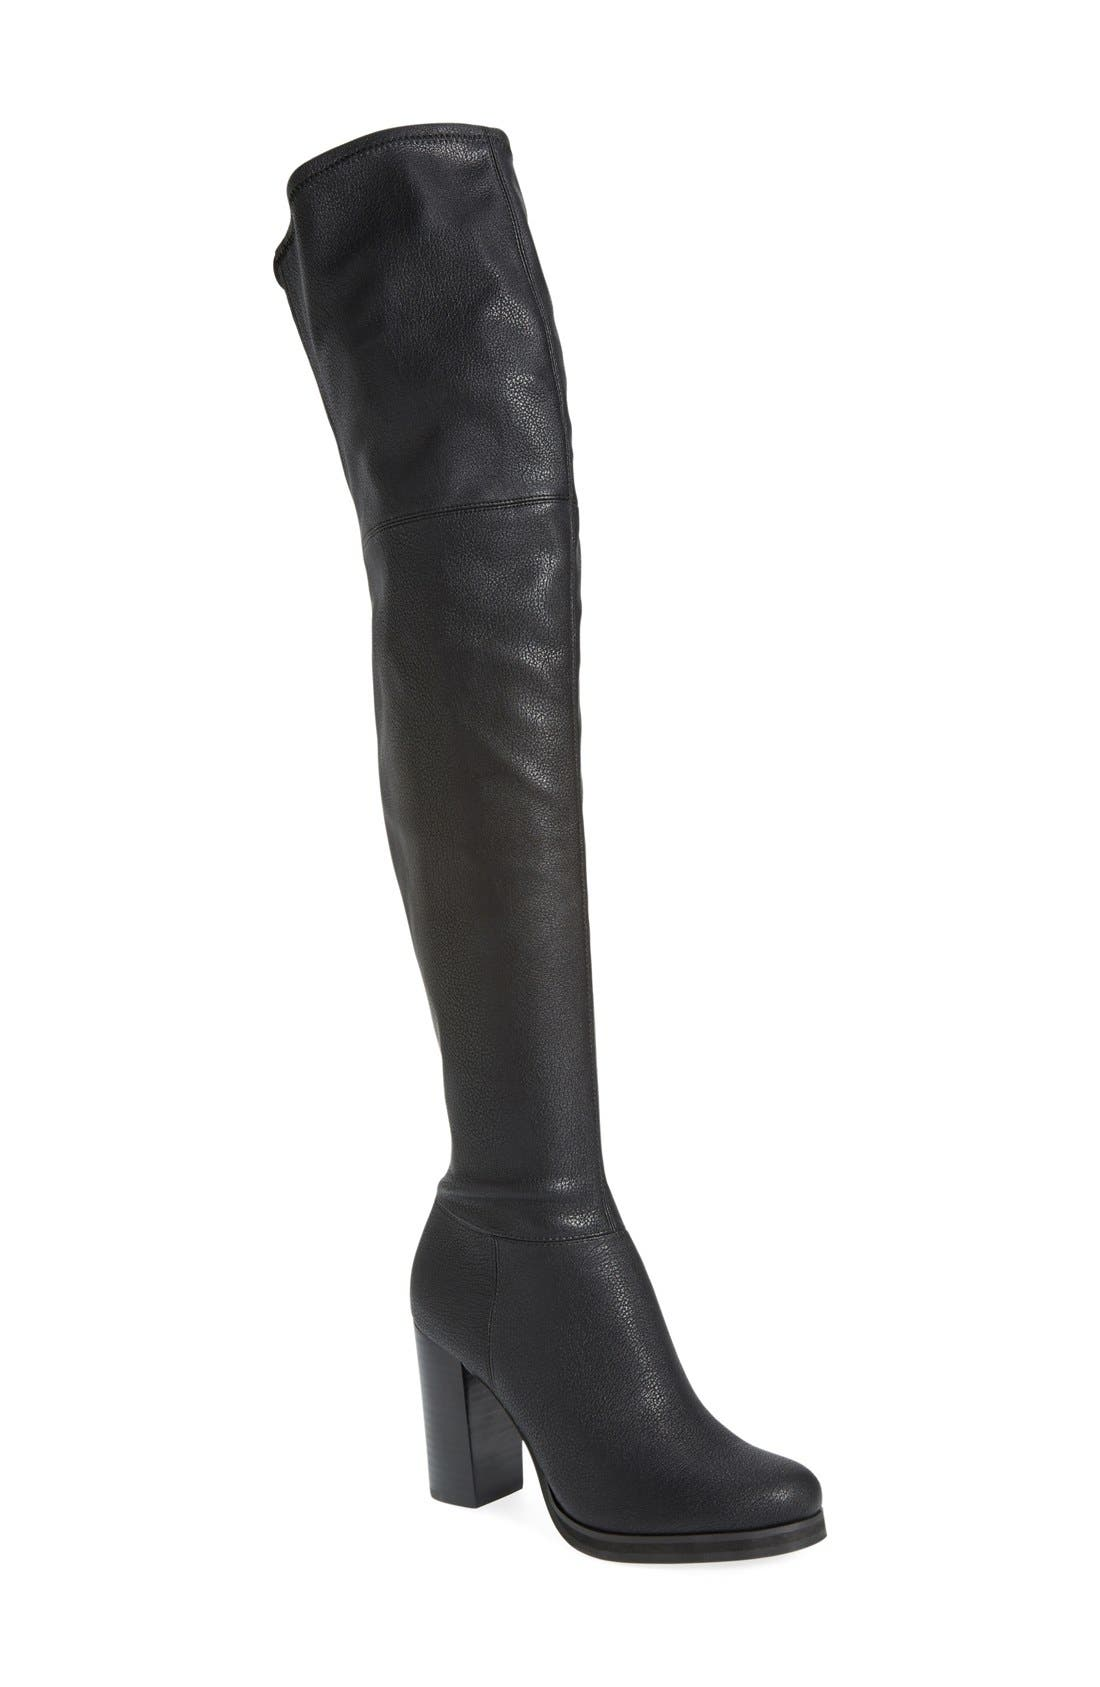 'Bisma' Over the Knee Boot,                             Main thumbnail 1, color,                             Black Pebbled Stretch